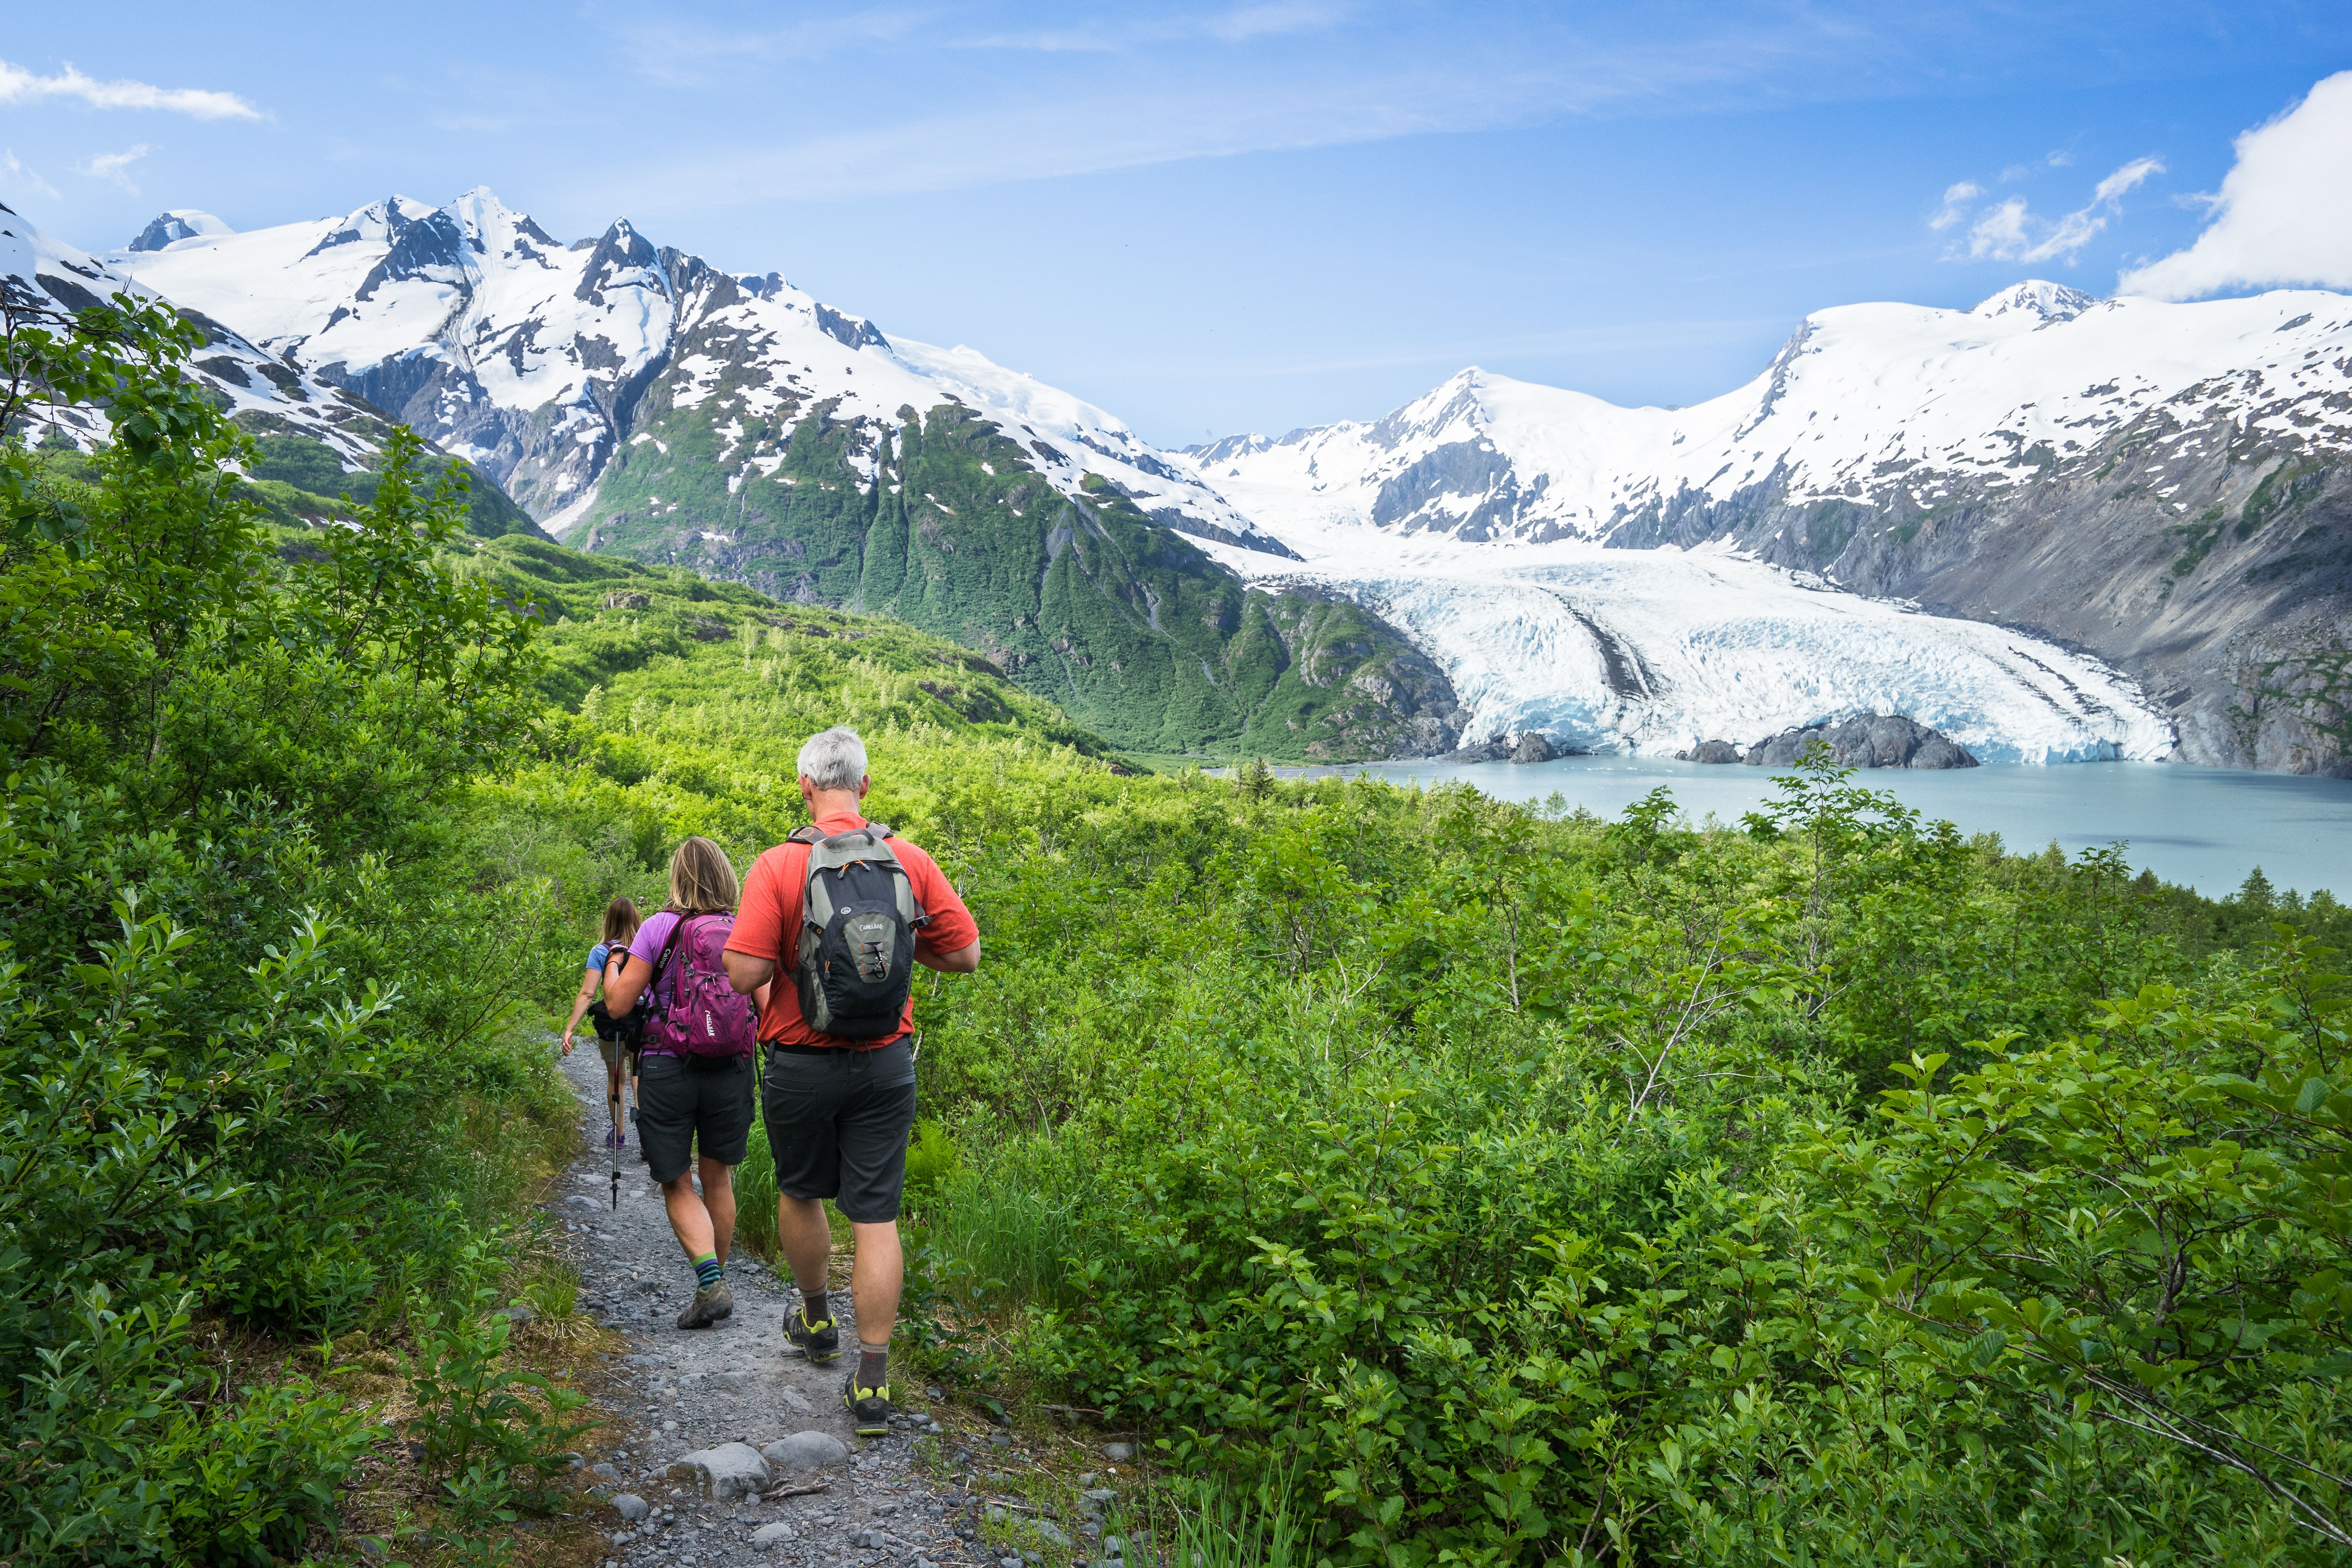 Things to do in Alaska - Hiking